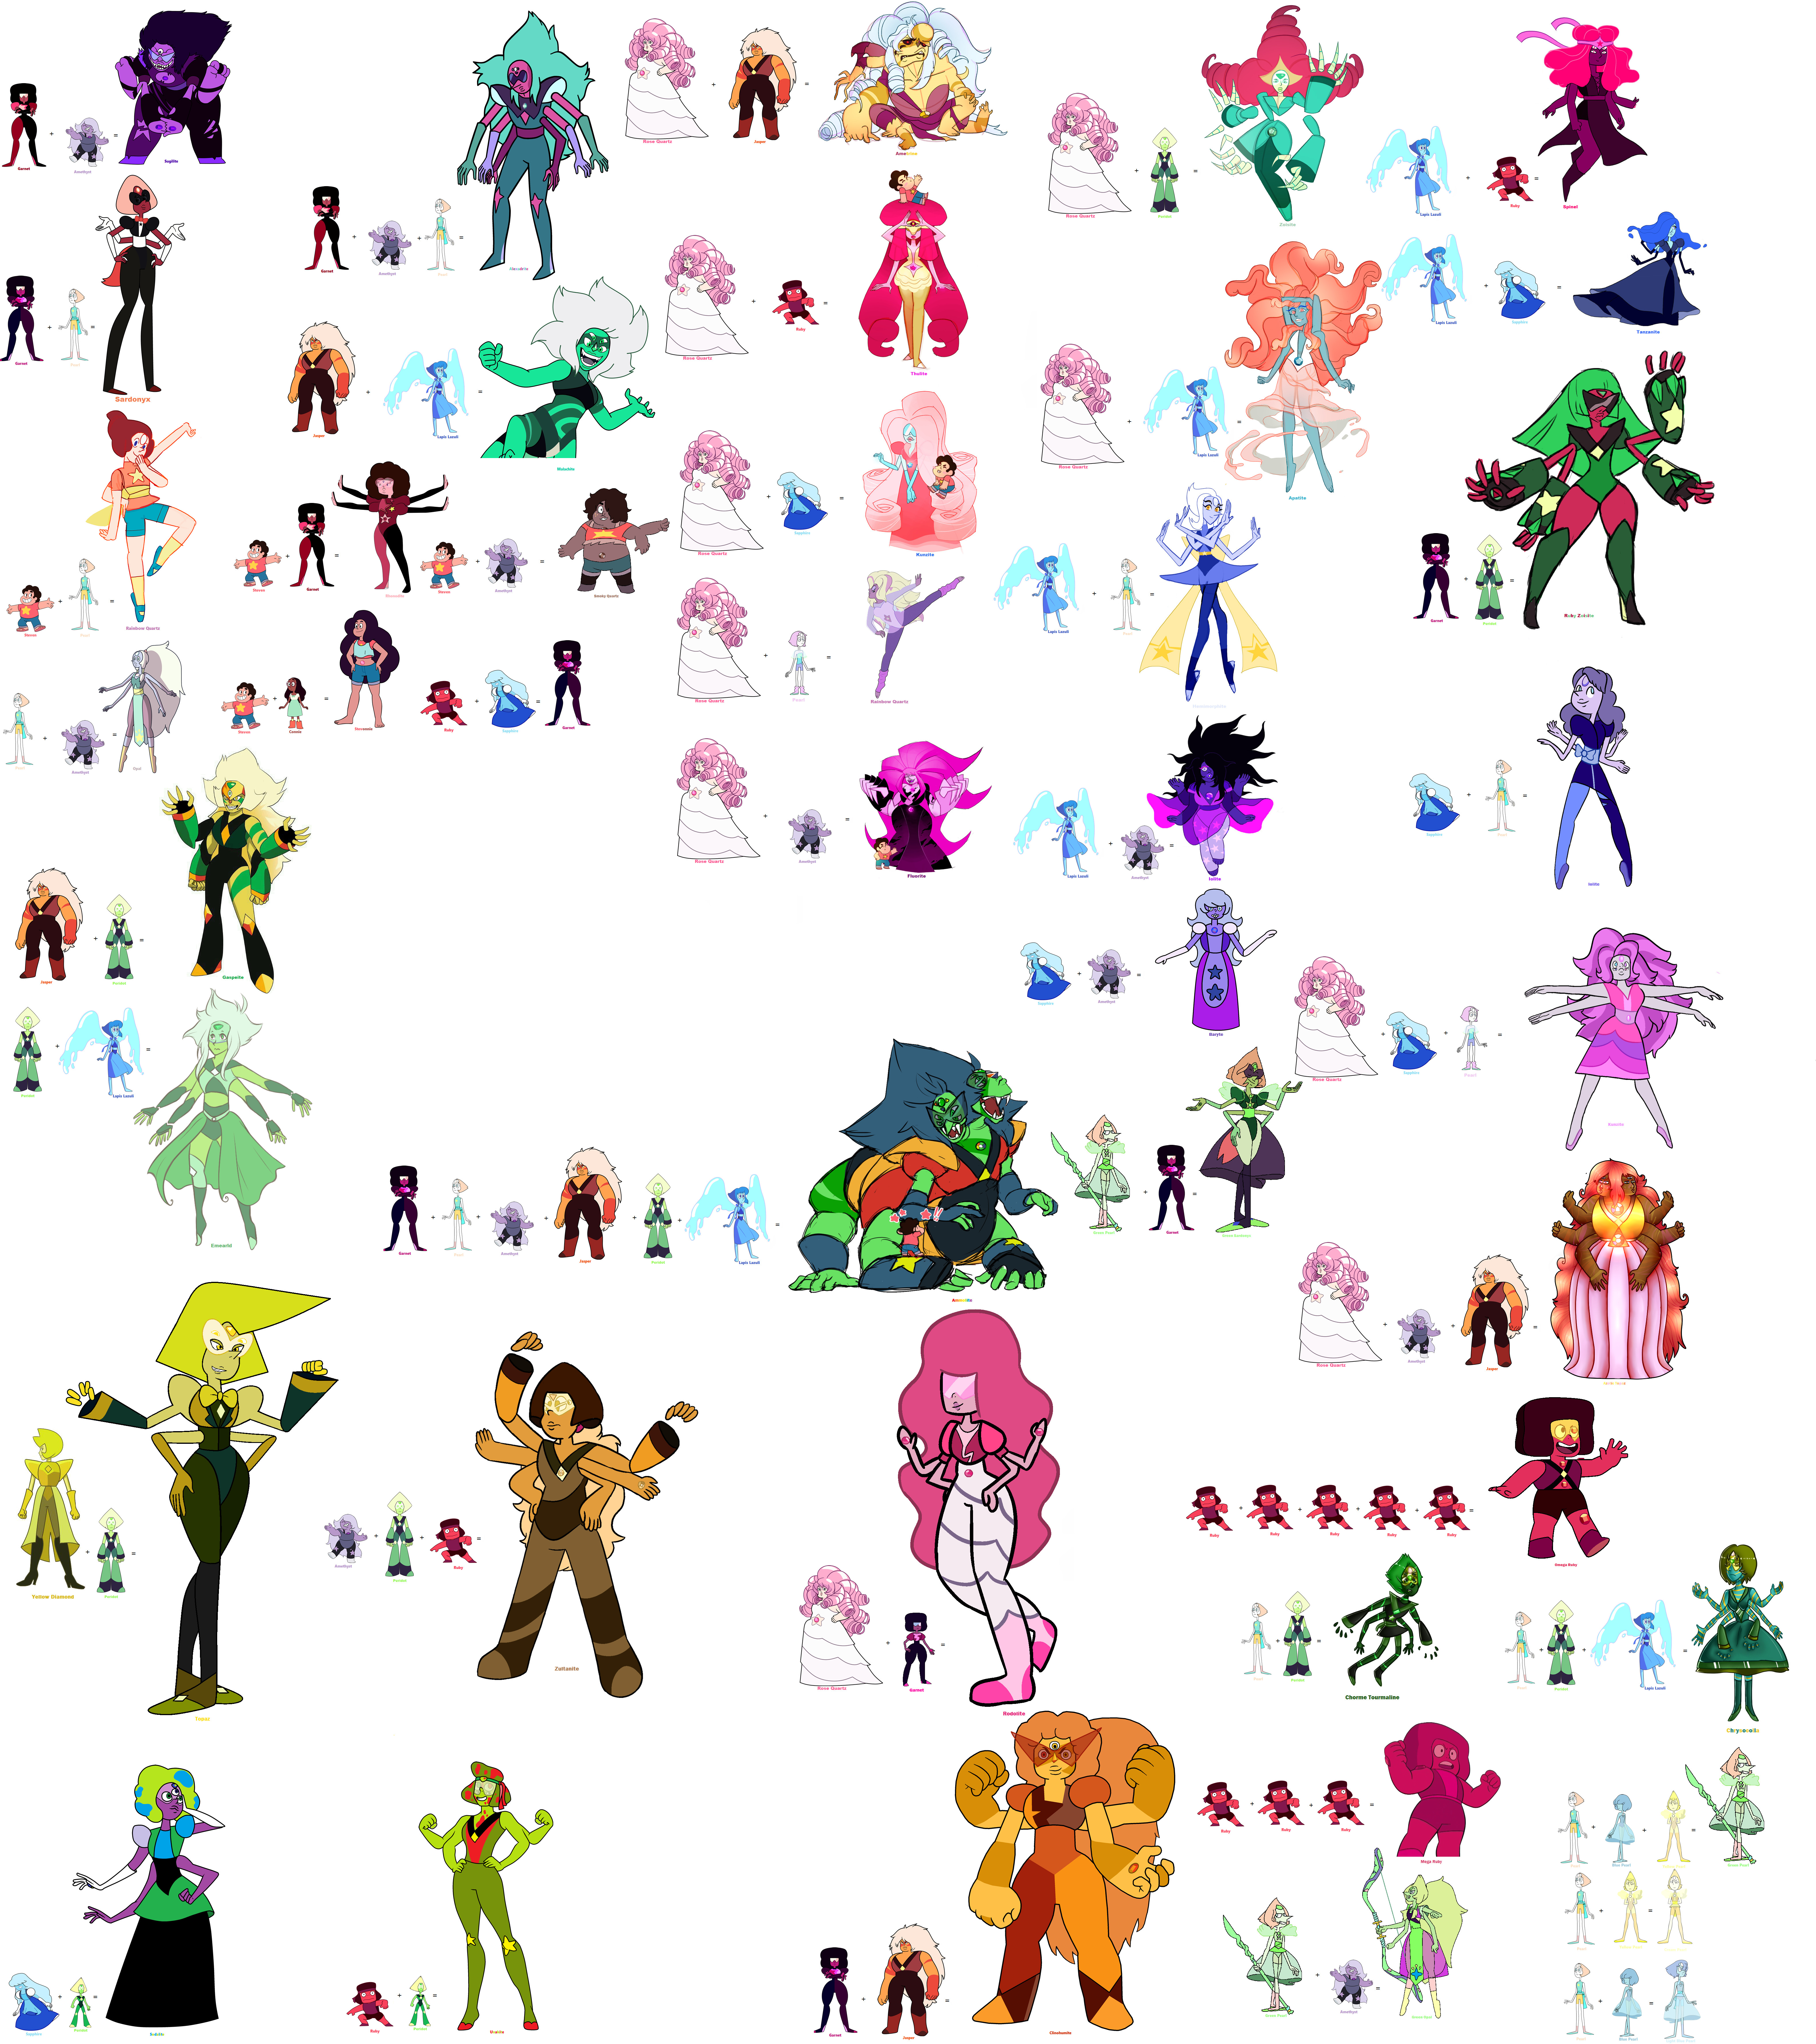 Crystal Gems Fusions 2 (UPDATE 08/06) by BFDIFan1234 on DeviantArt